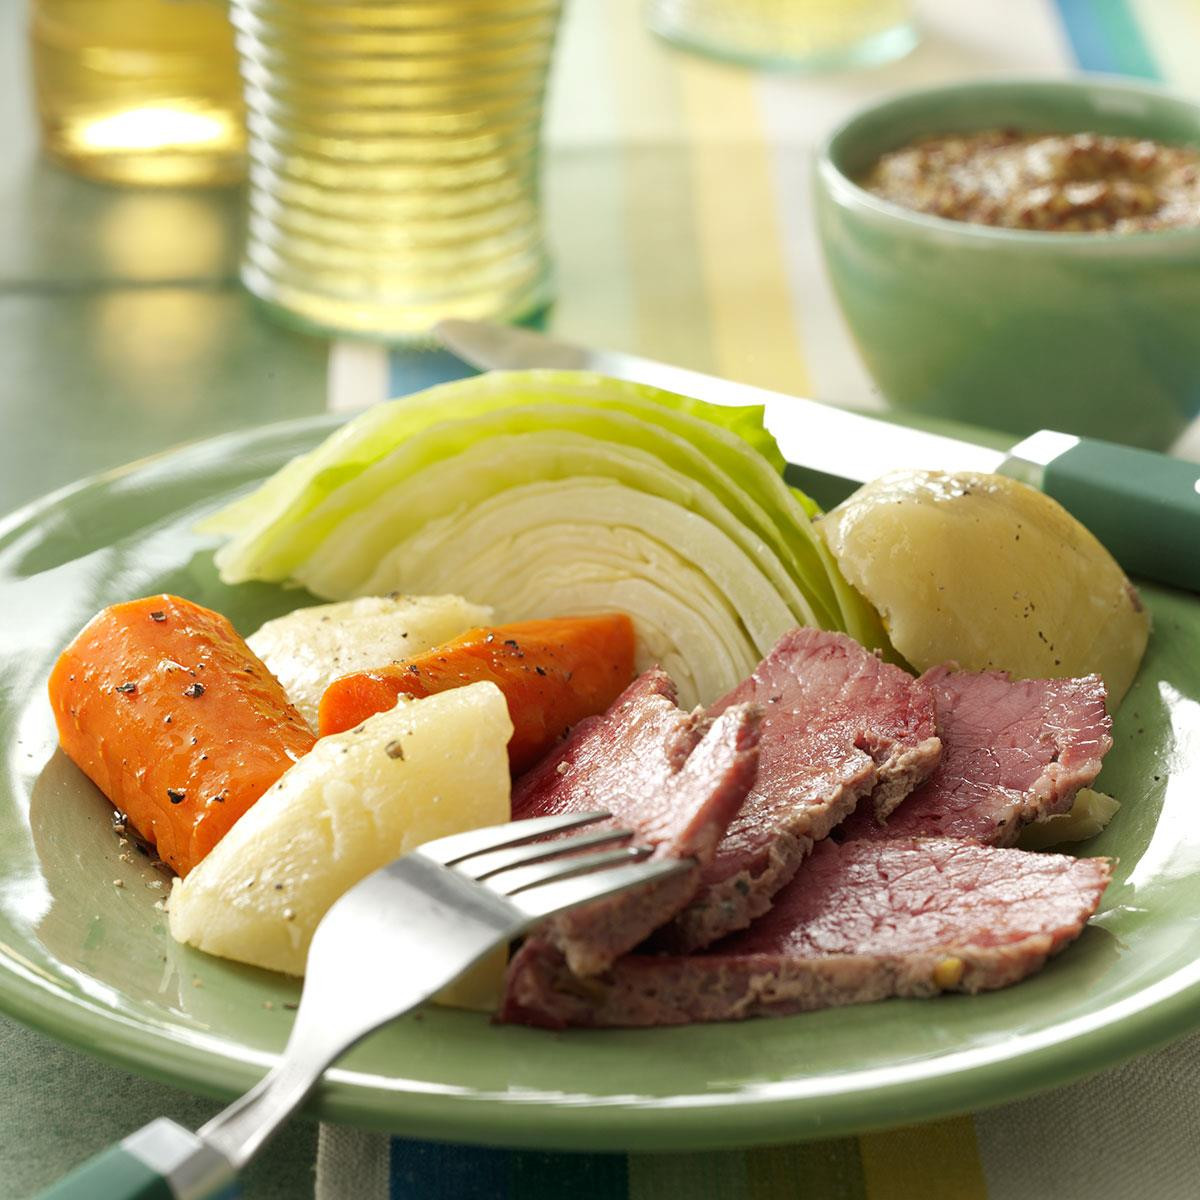 Boiled Dinner With Ham  how do you make boiled dinner with ham